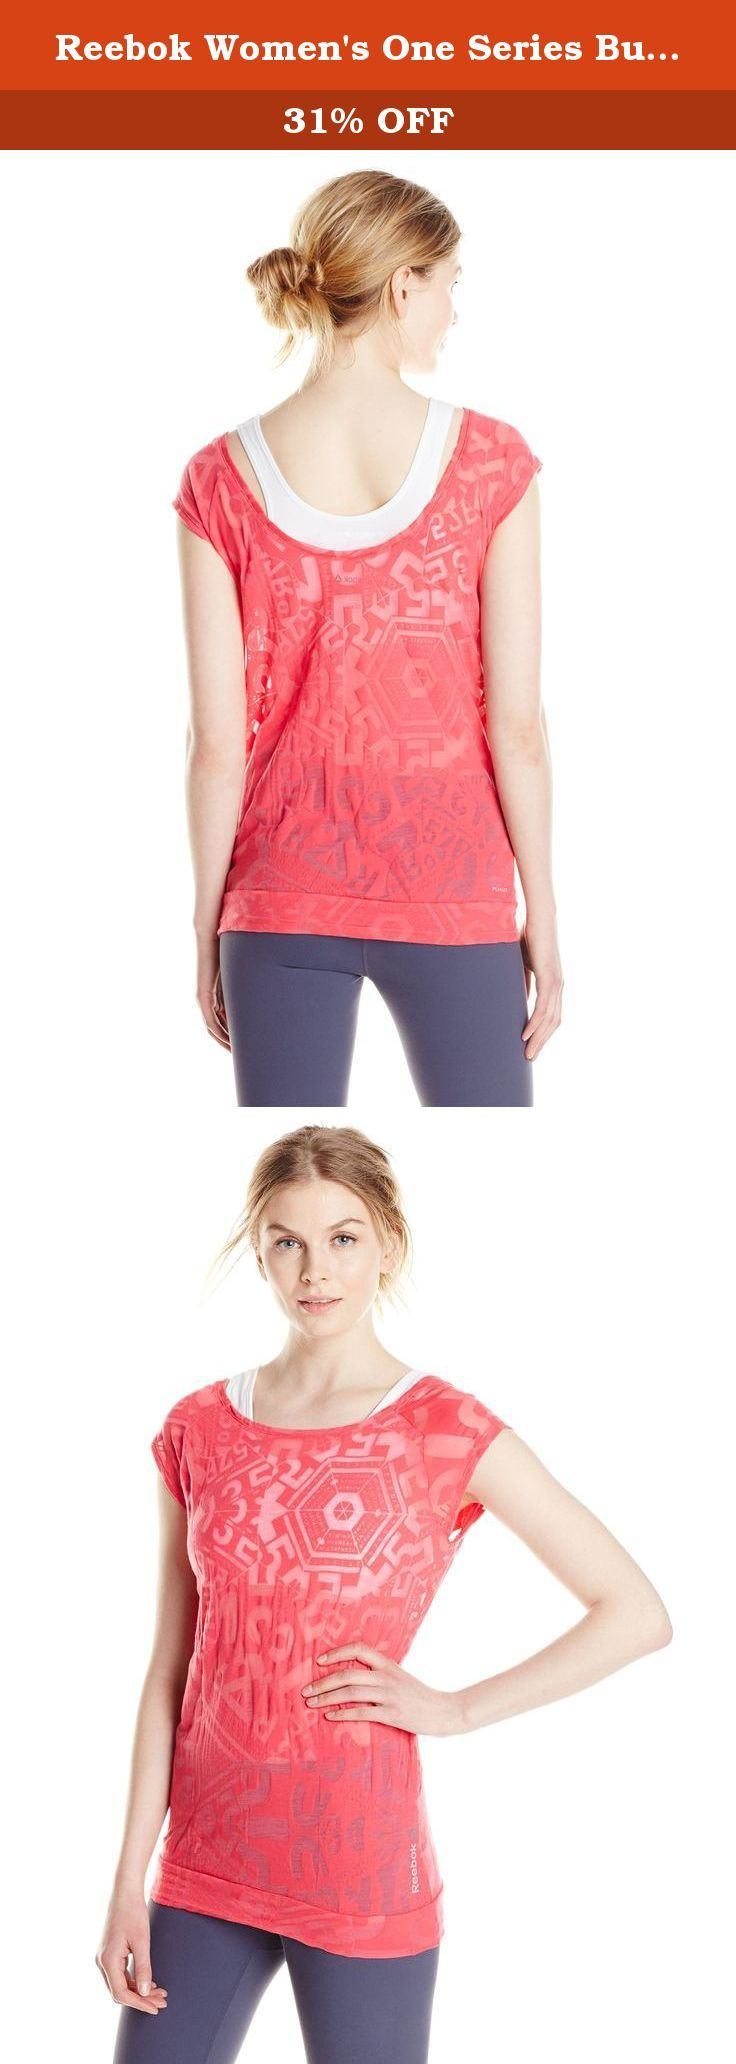 Reebok Women's One Series Burnout Tee, Blazing Pink, Medium. This fitted tee provides coverage and a stylish look during any training activity whether indoors or out.